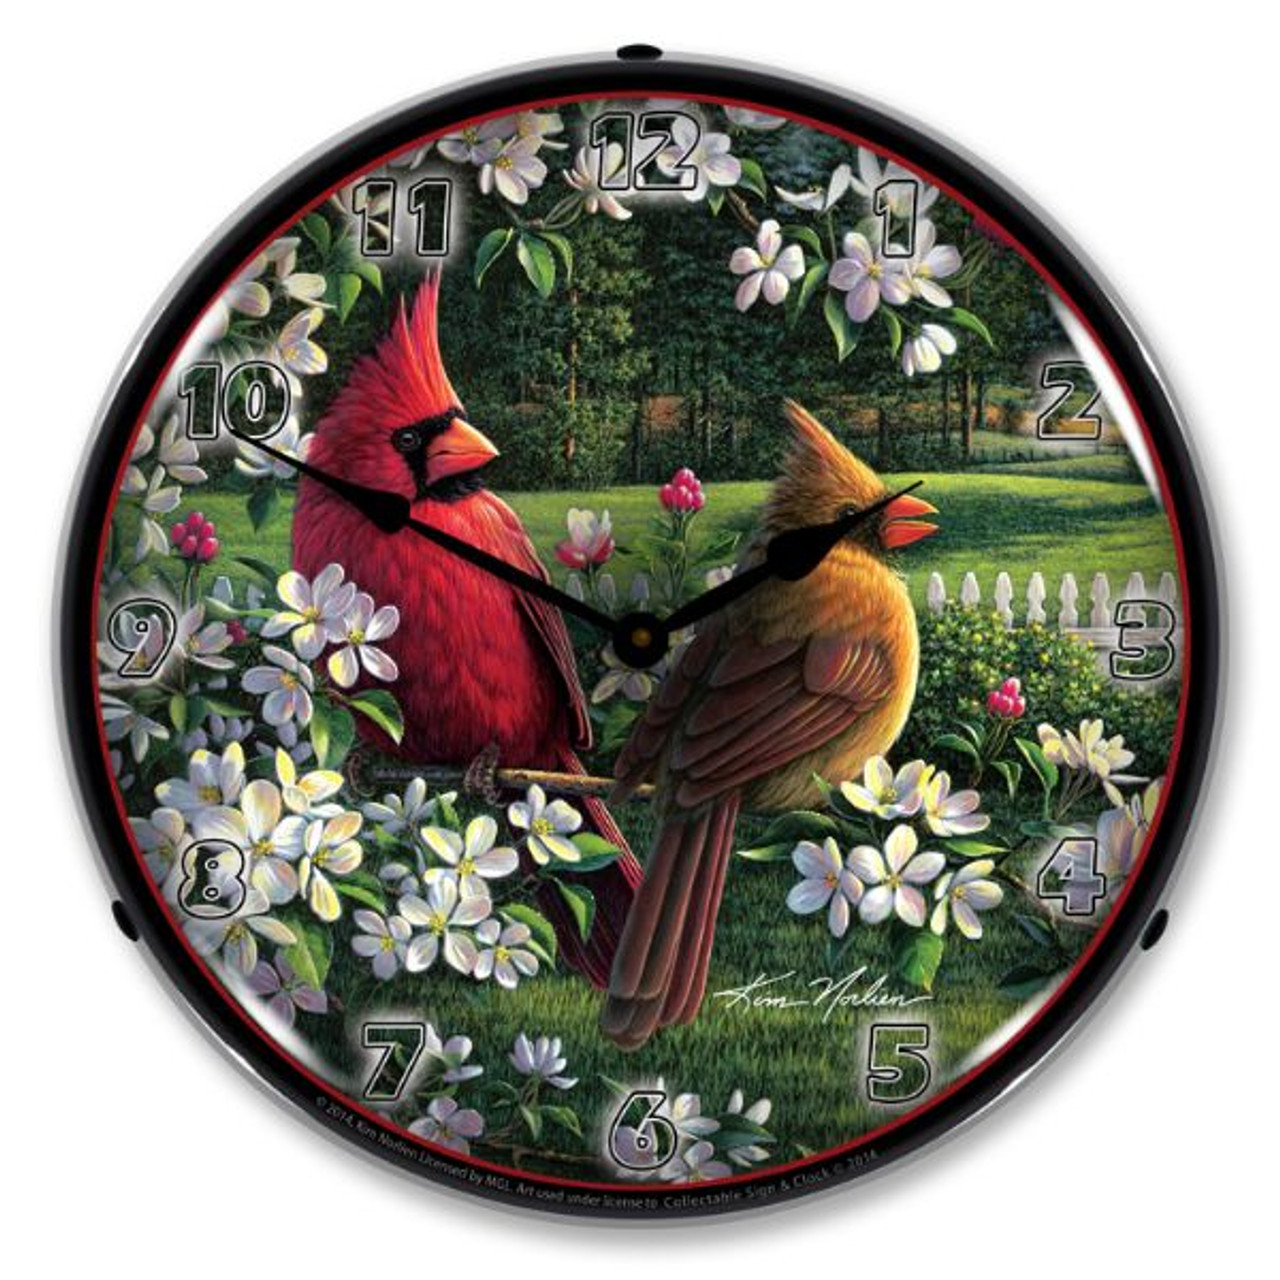 Spring Cardinals Lighted Wall Clock 14 x 14 Inches